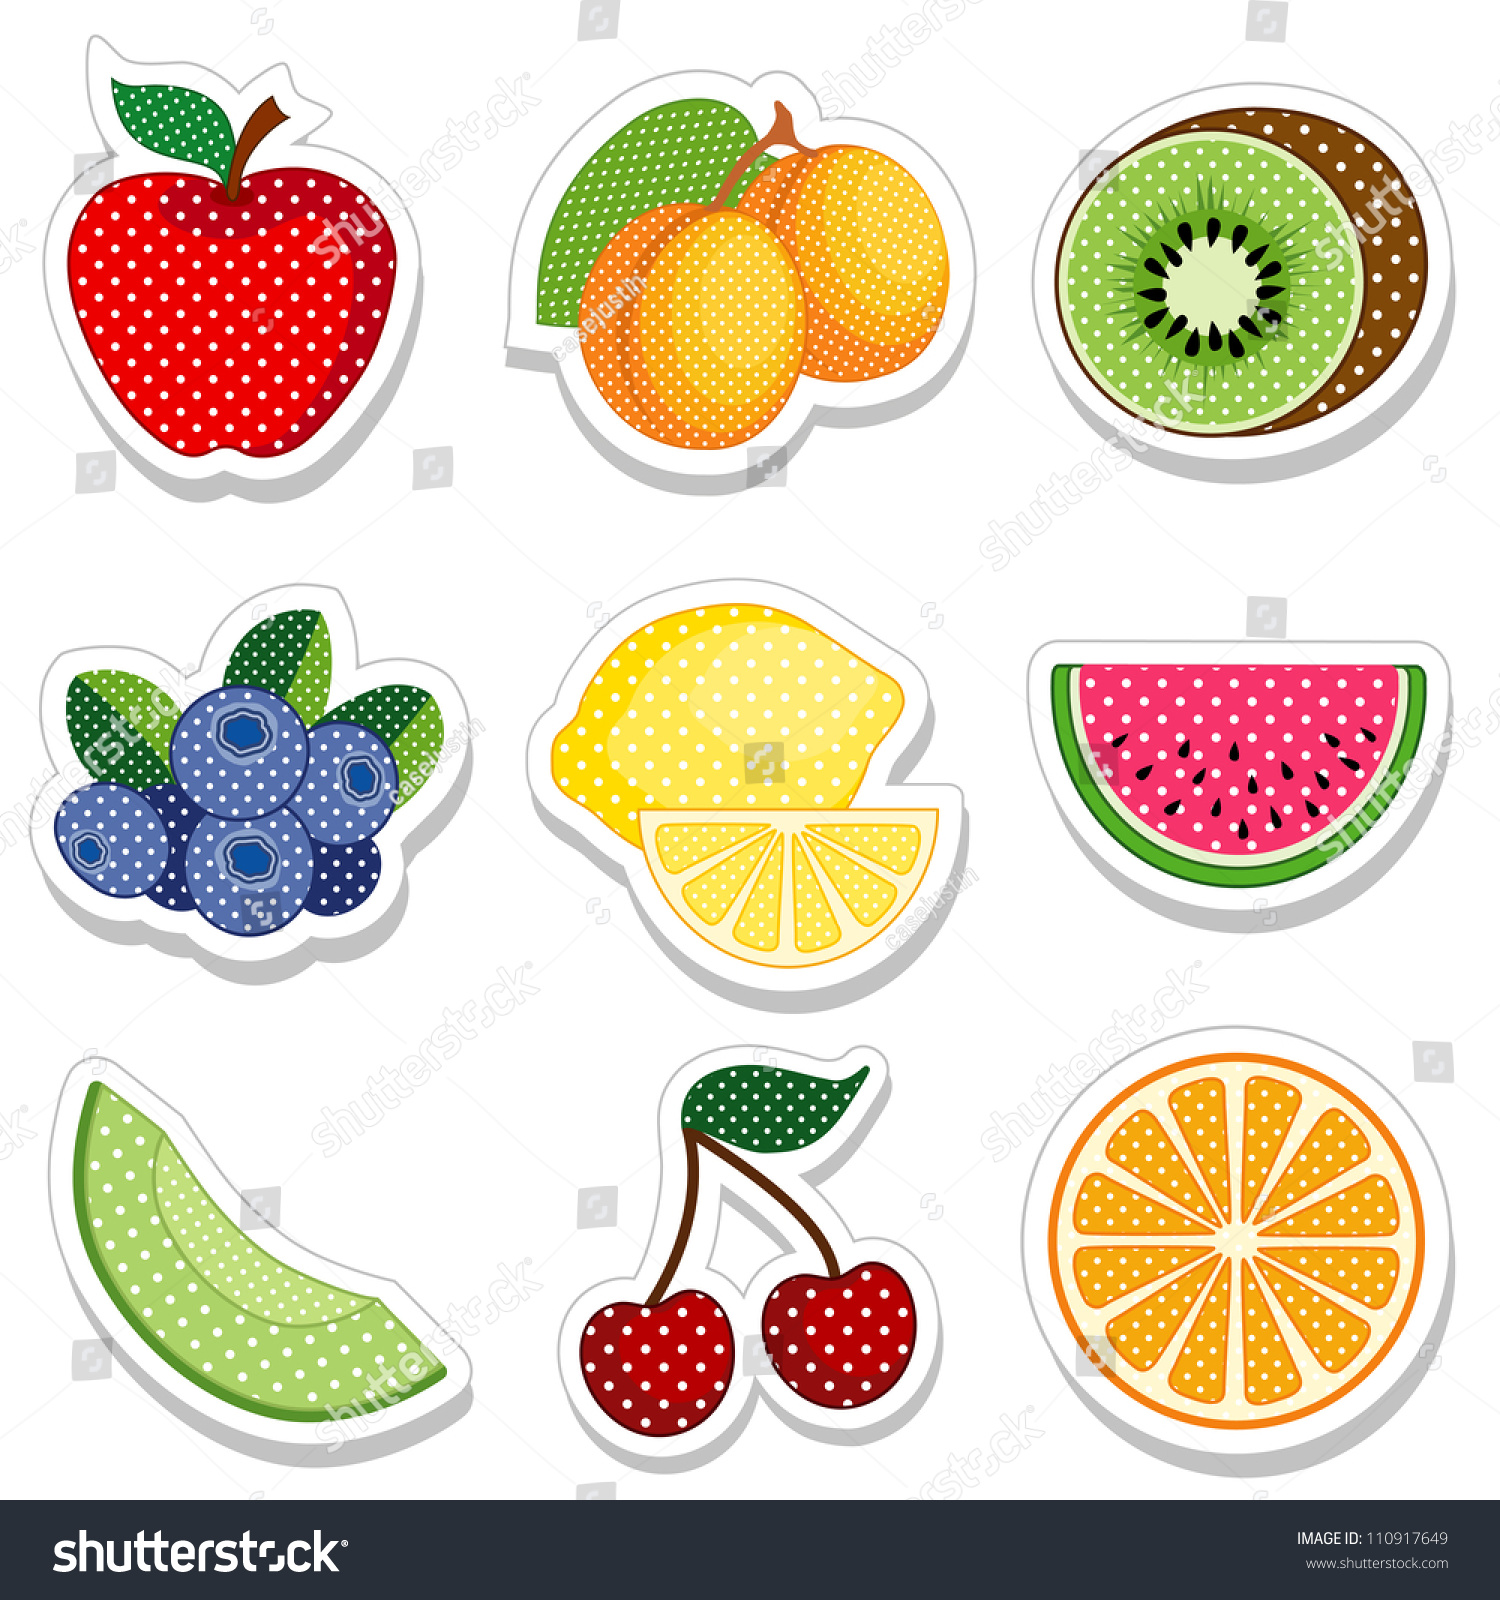 how healthy is kiwi fruit are fruit stickers edible